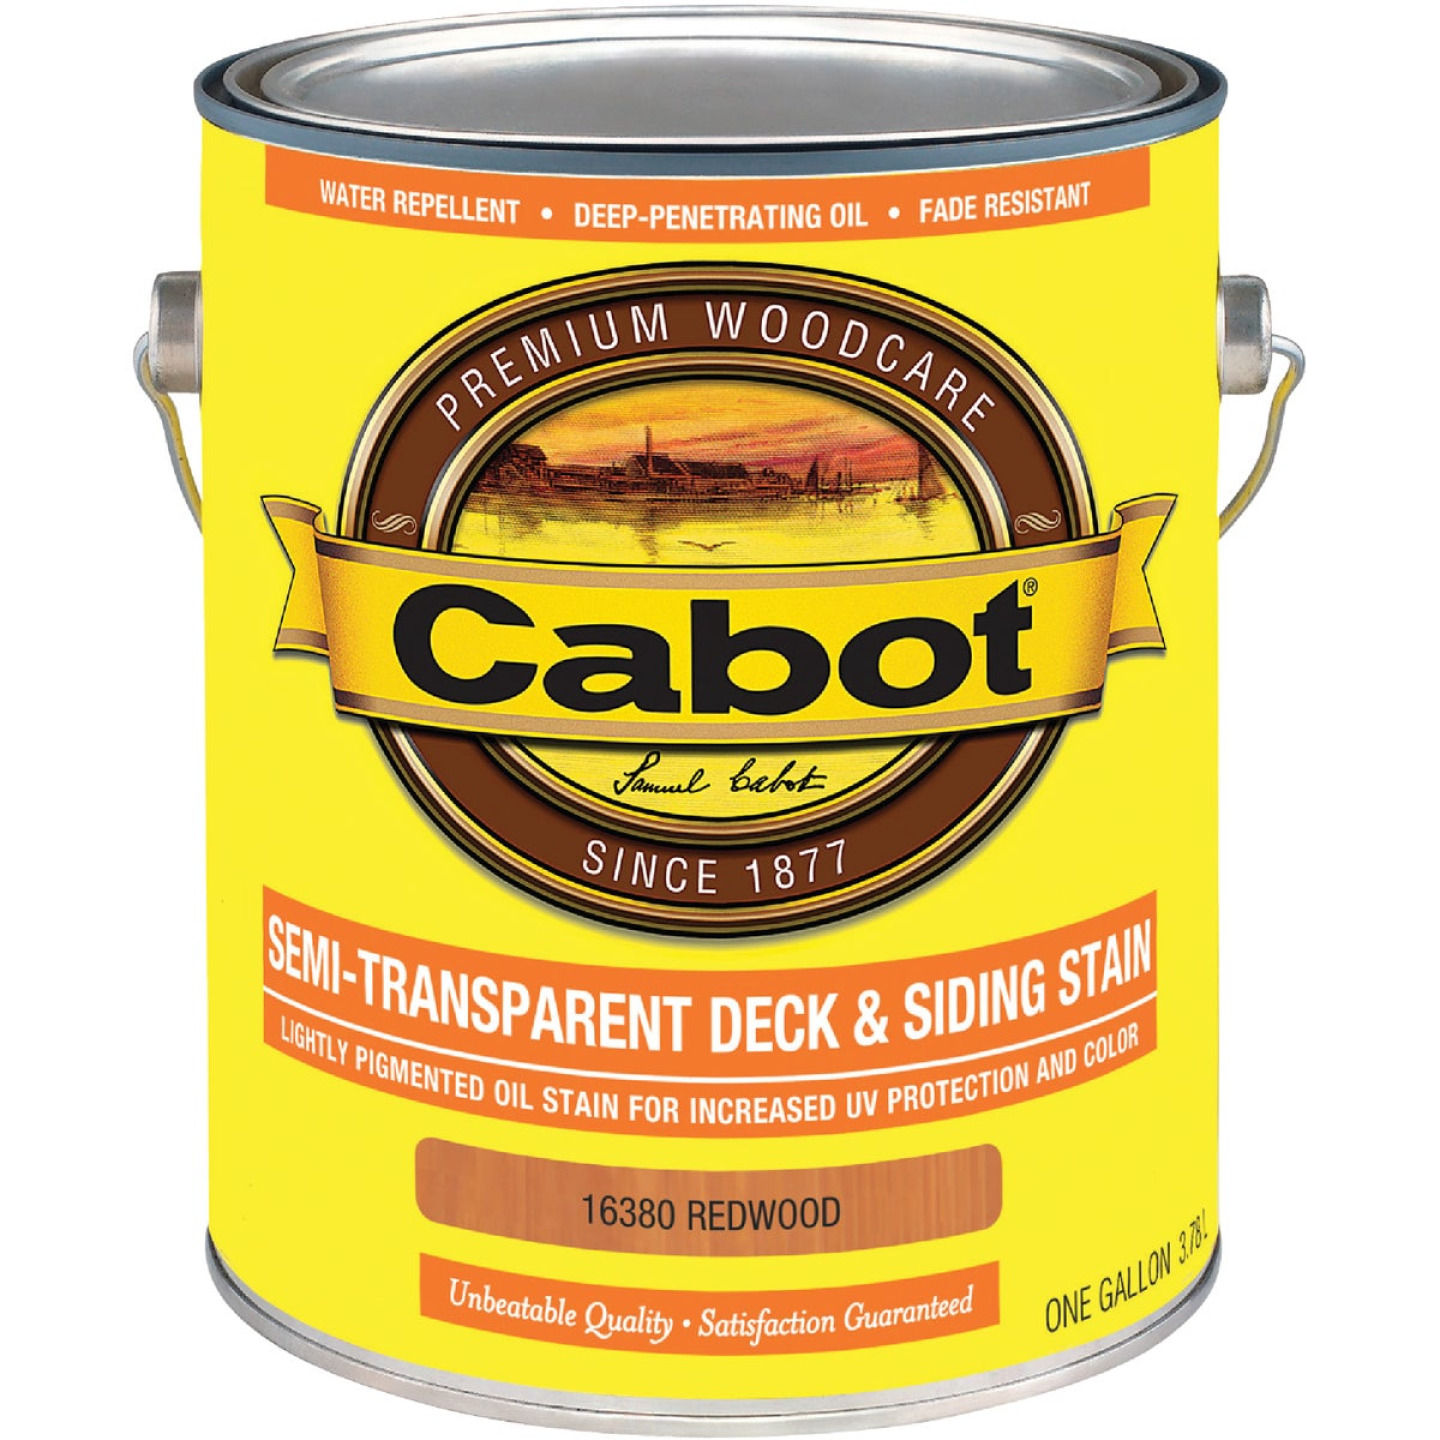 Cabot VOC Semi-Transparent Deck & Siding Exterior Stain, Redwood, 1 Gal. Image 1